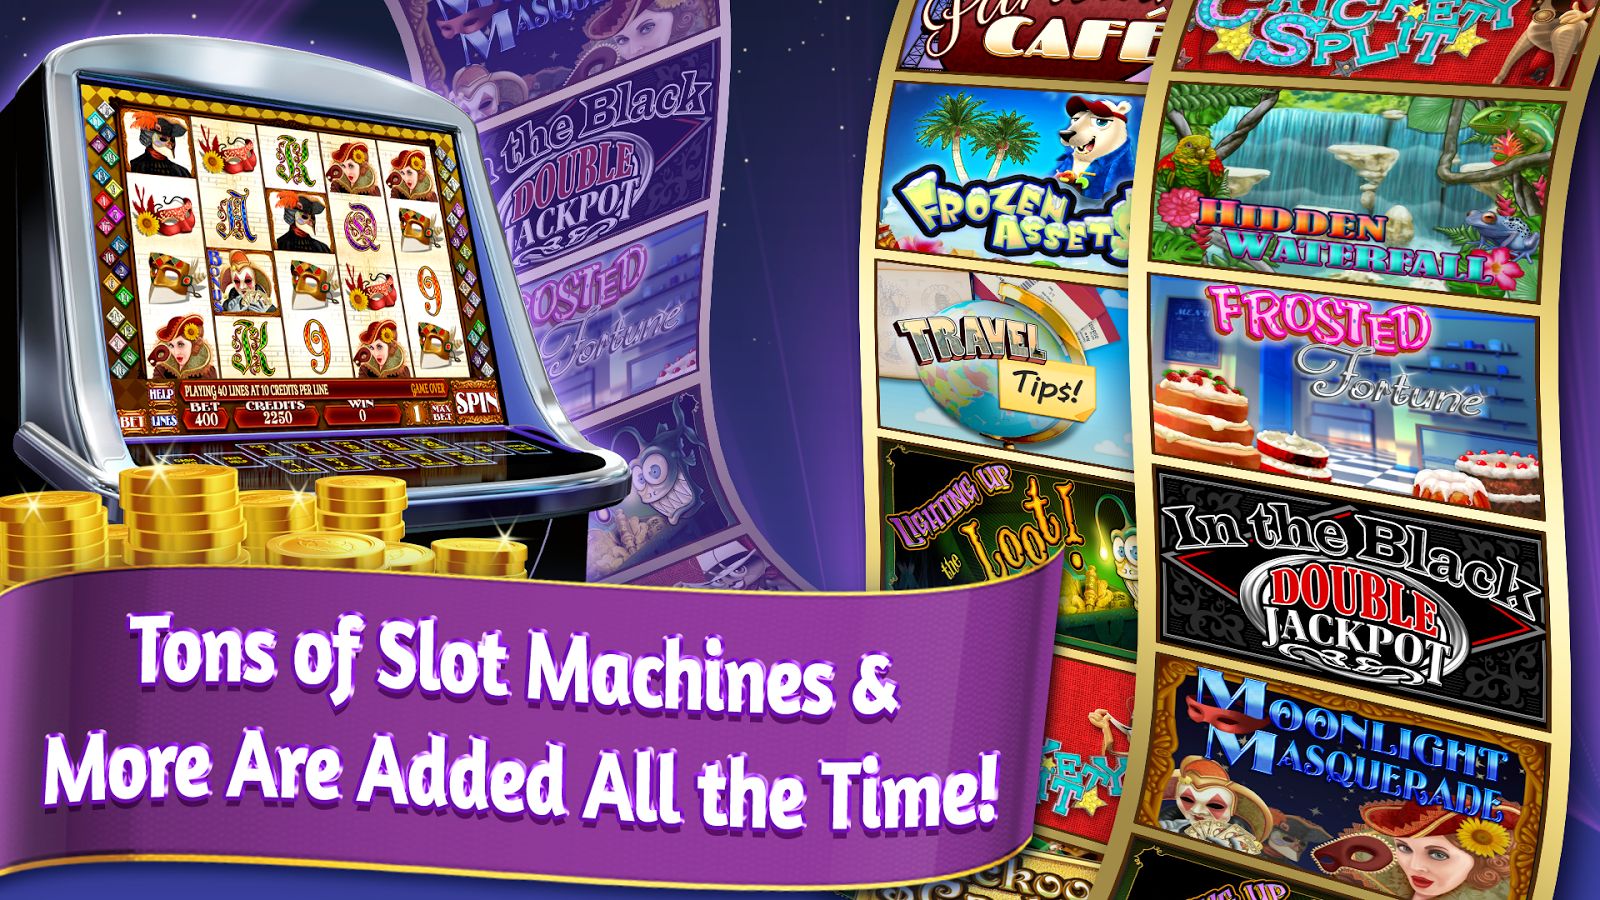 play 5 card stud online free masque slots